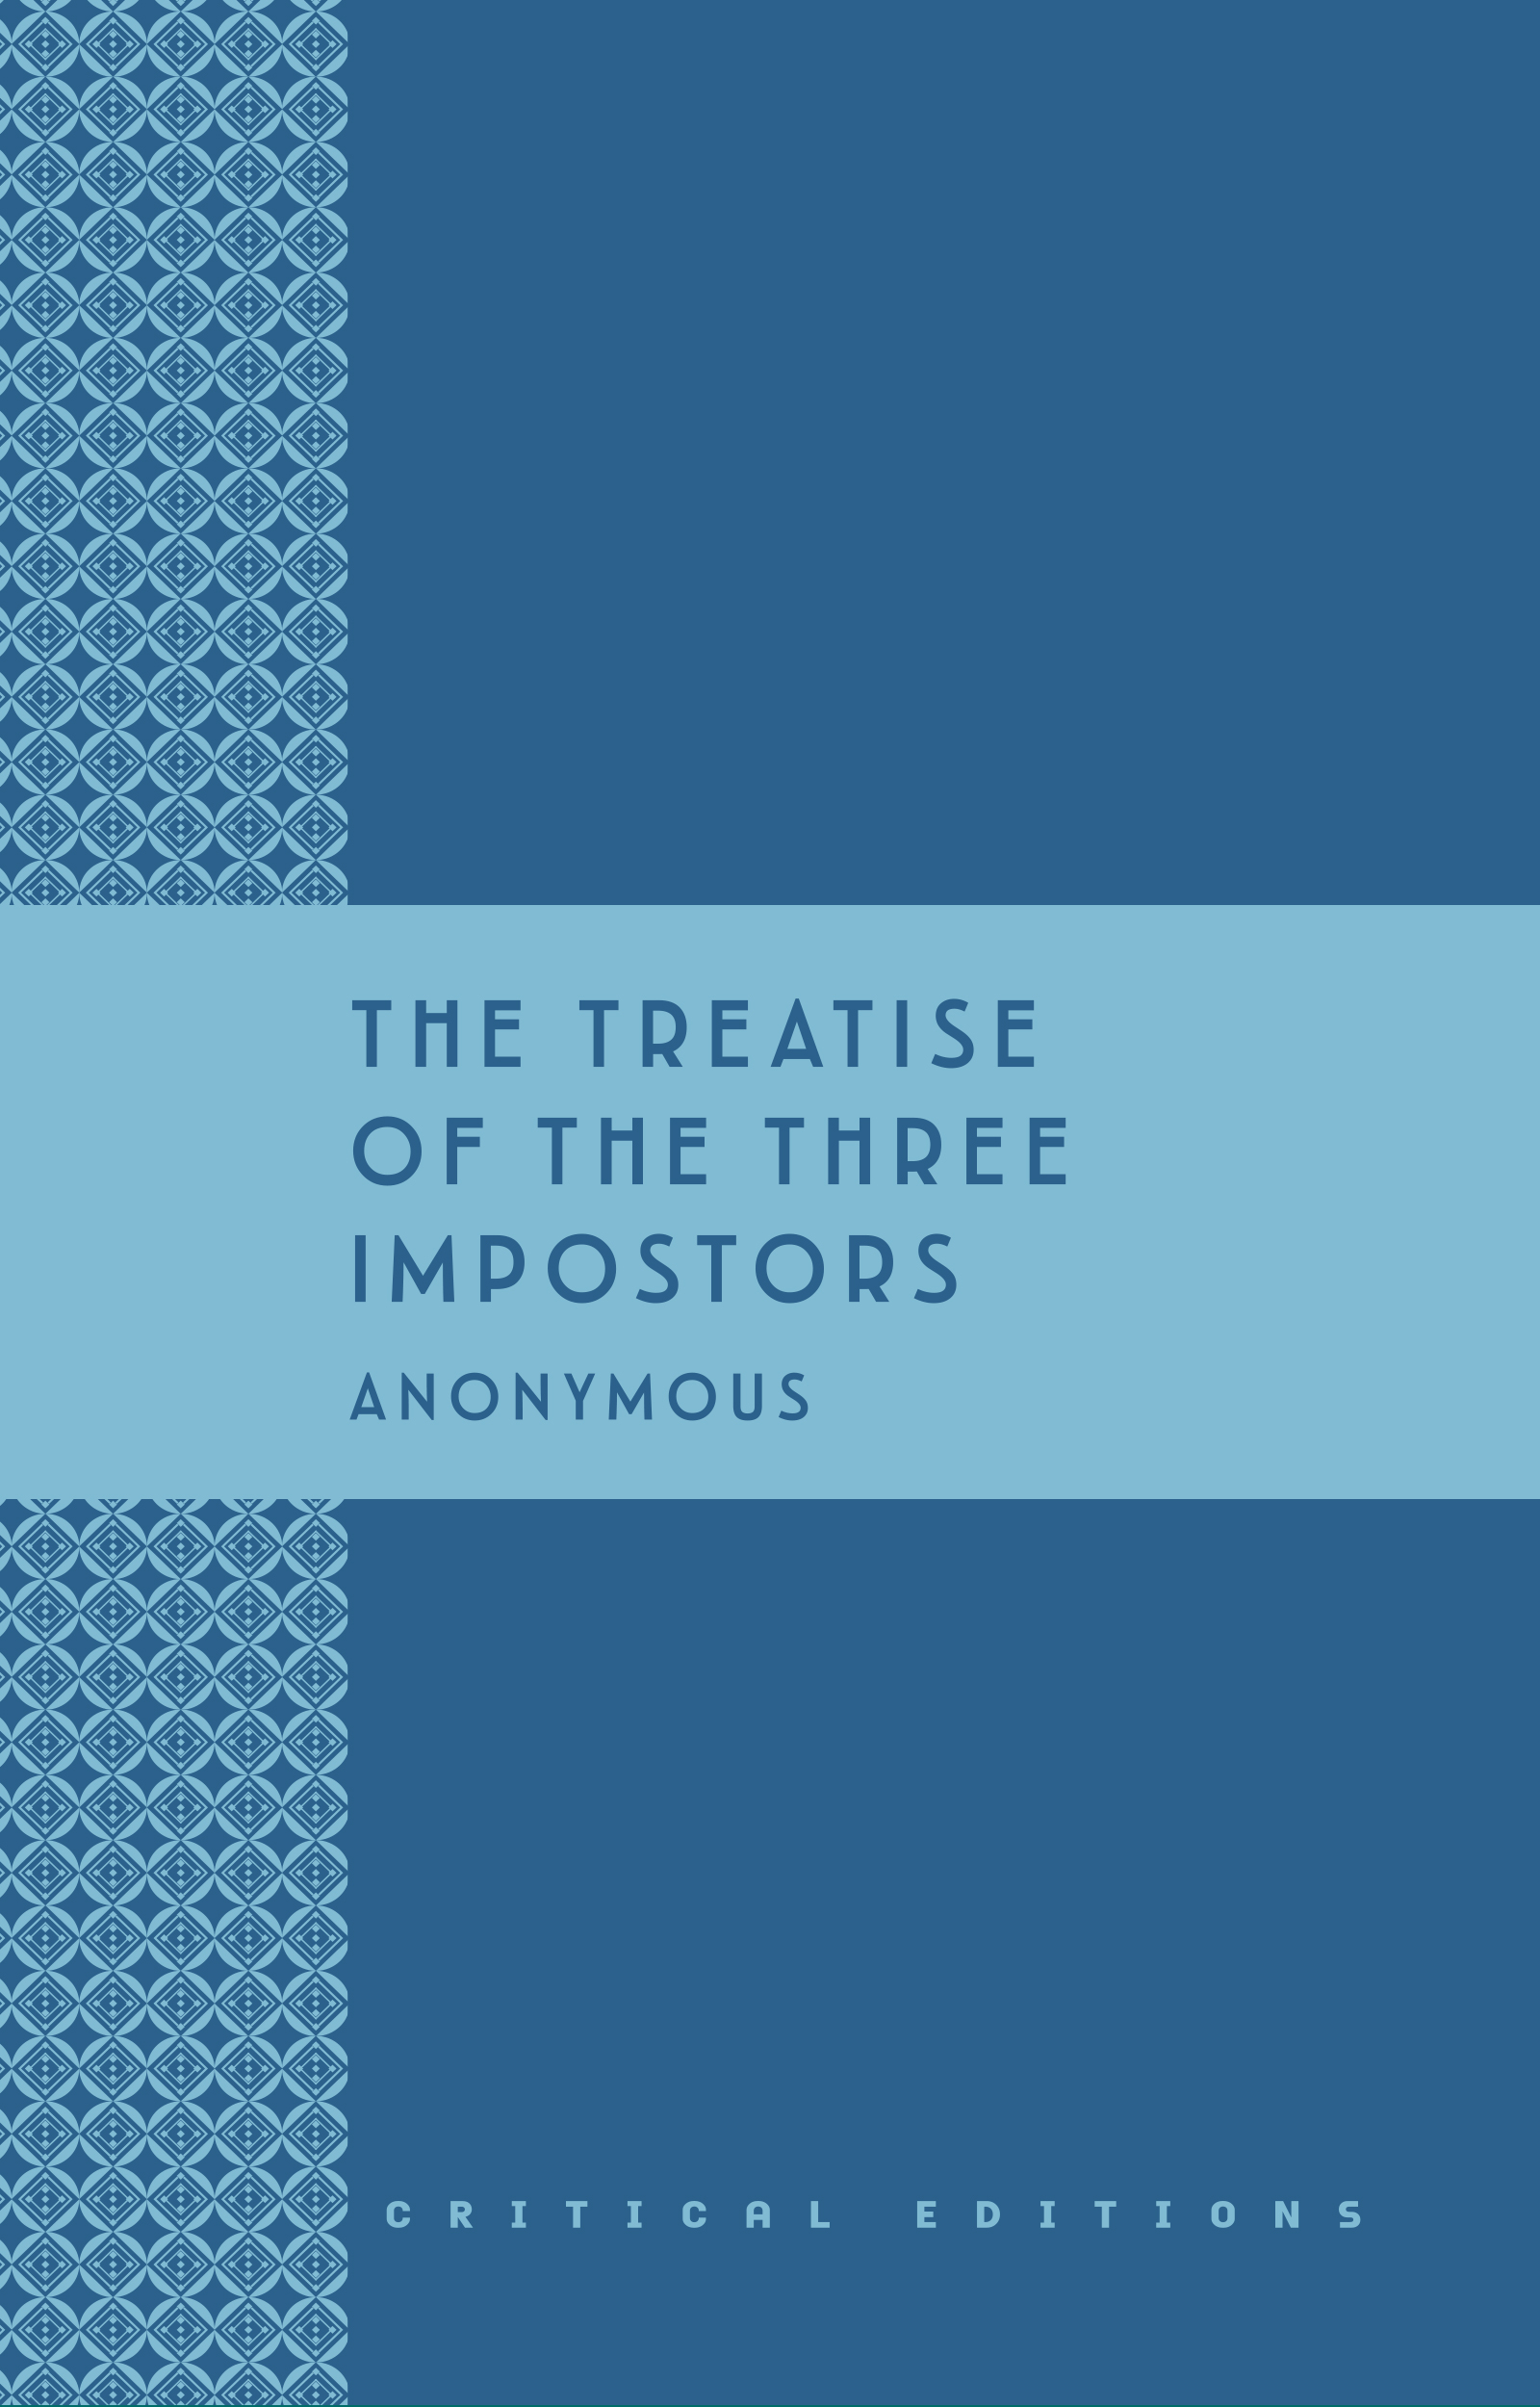 The Treatise of the Three Impostors